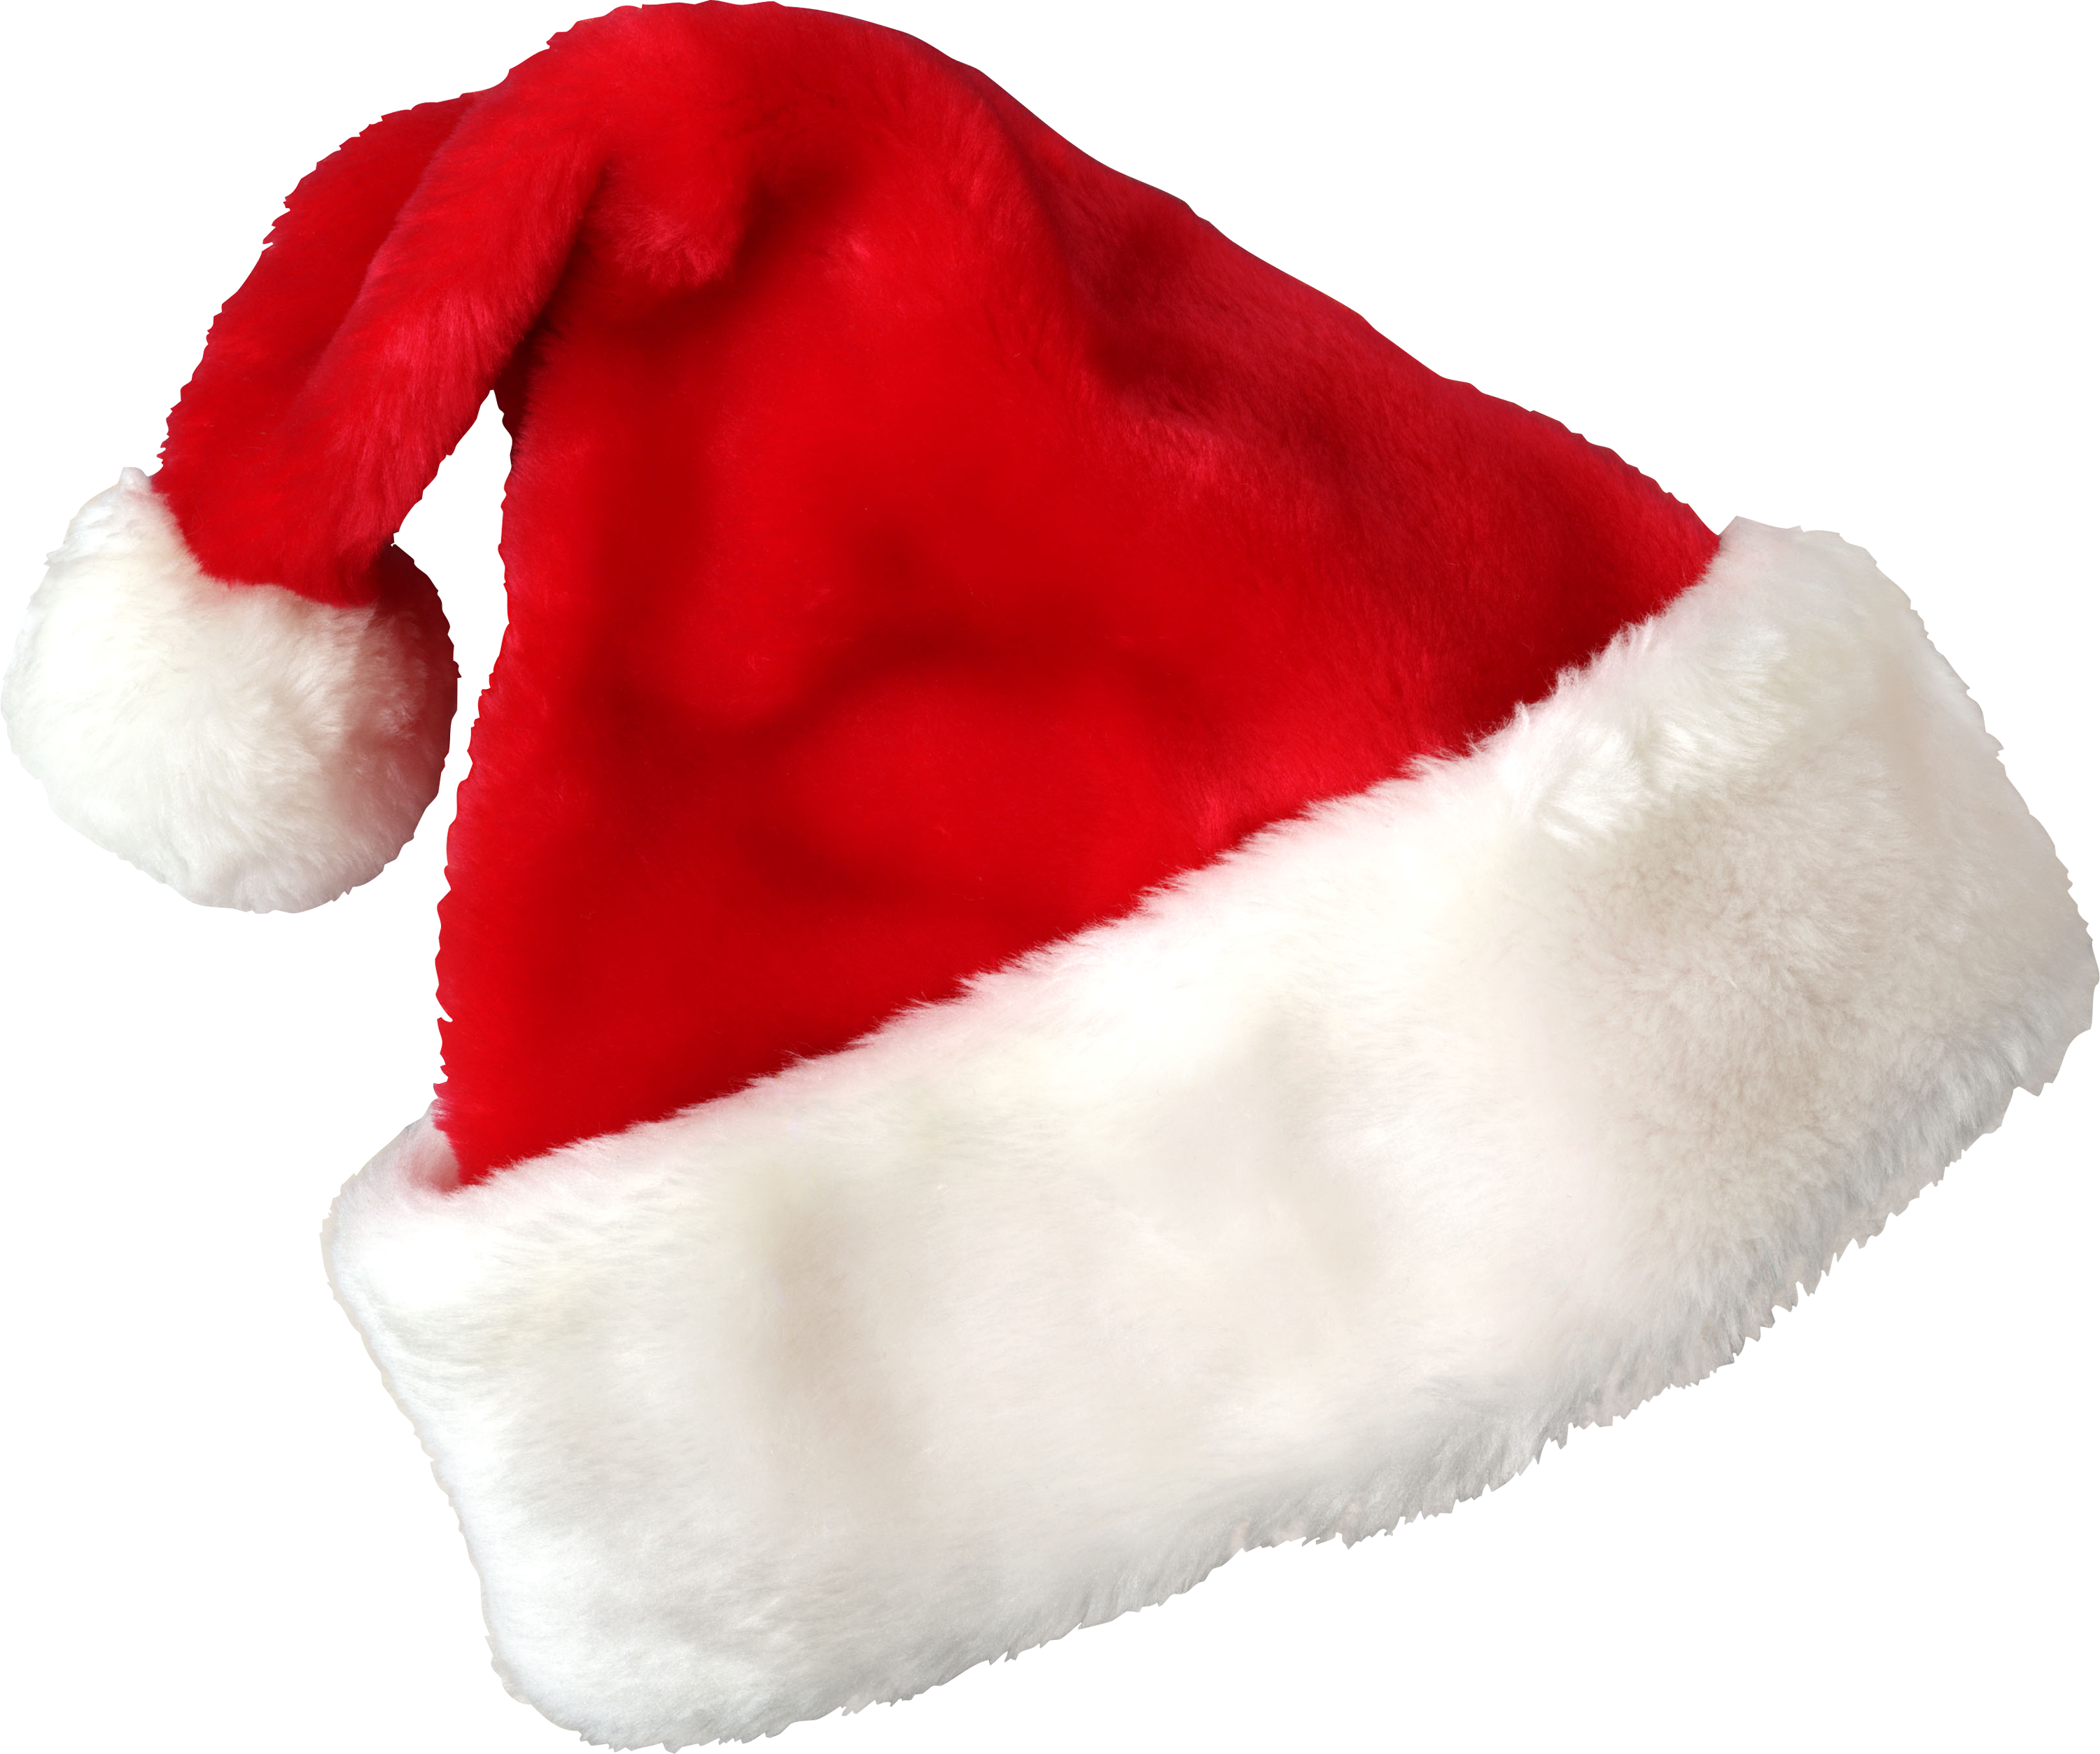 Christmas Red Hat PNG Image